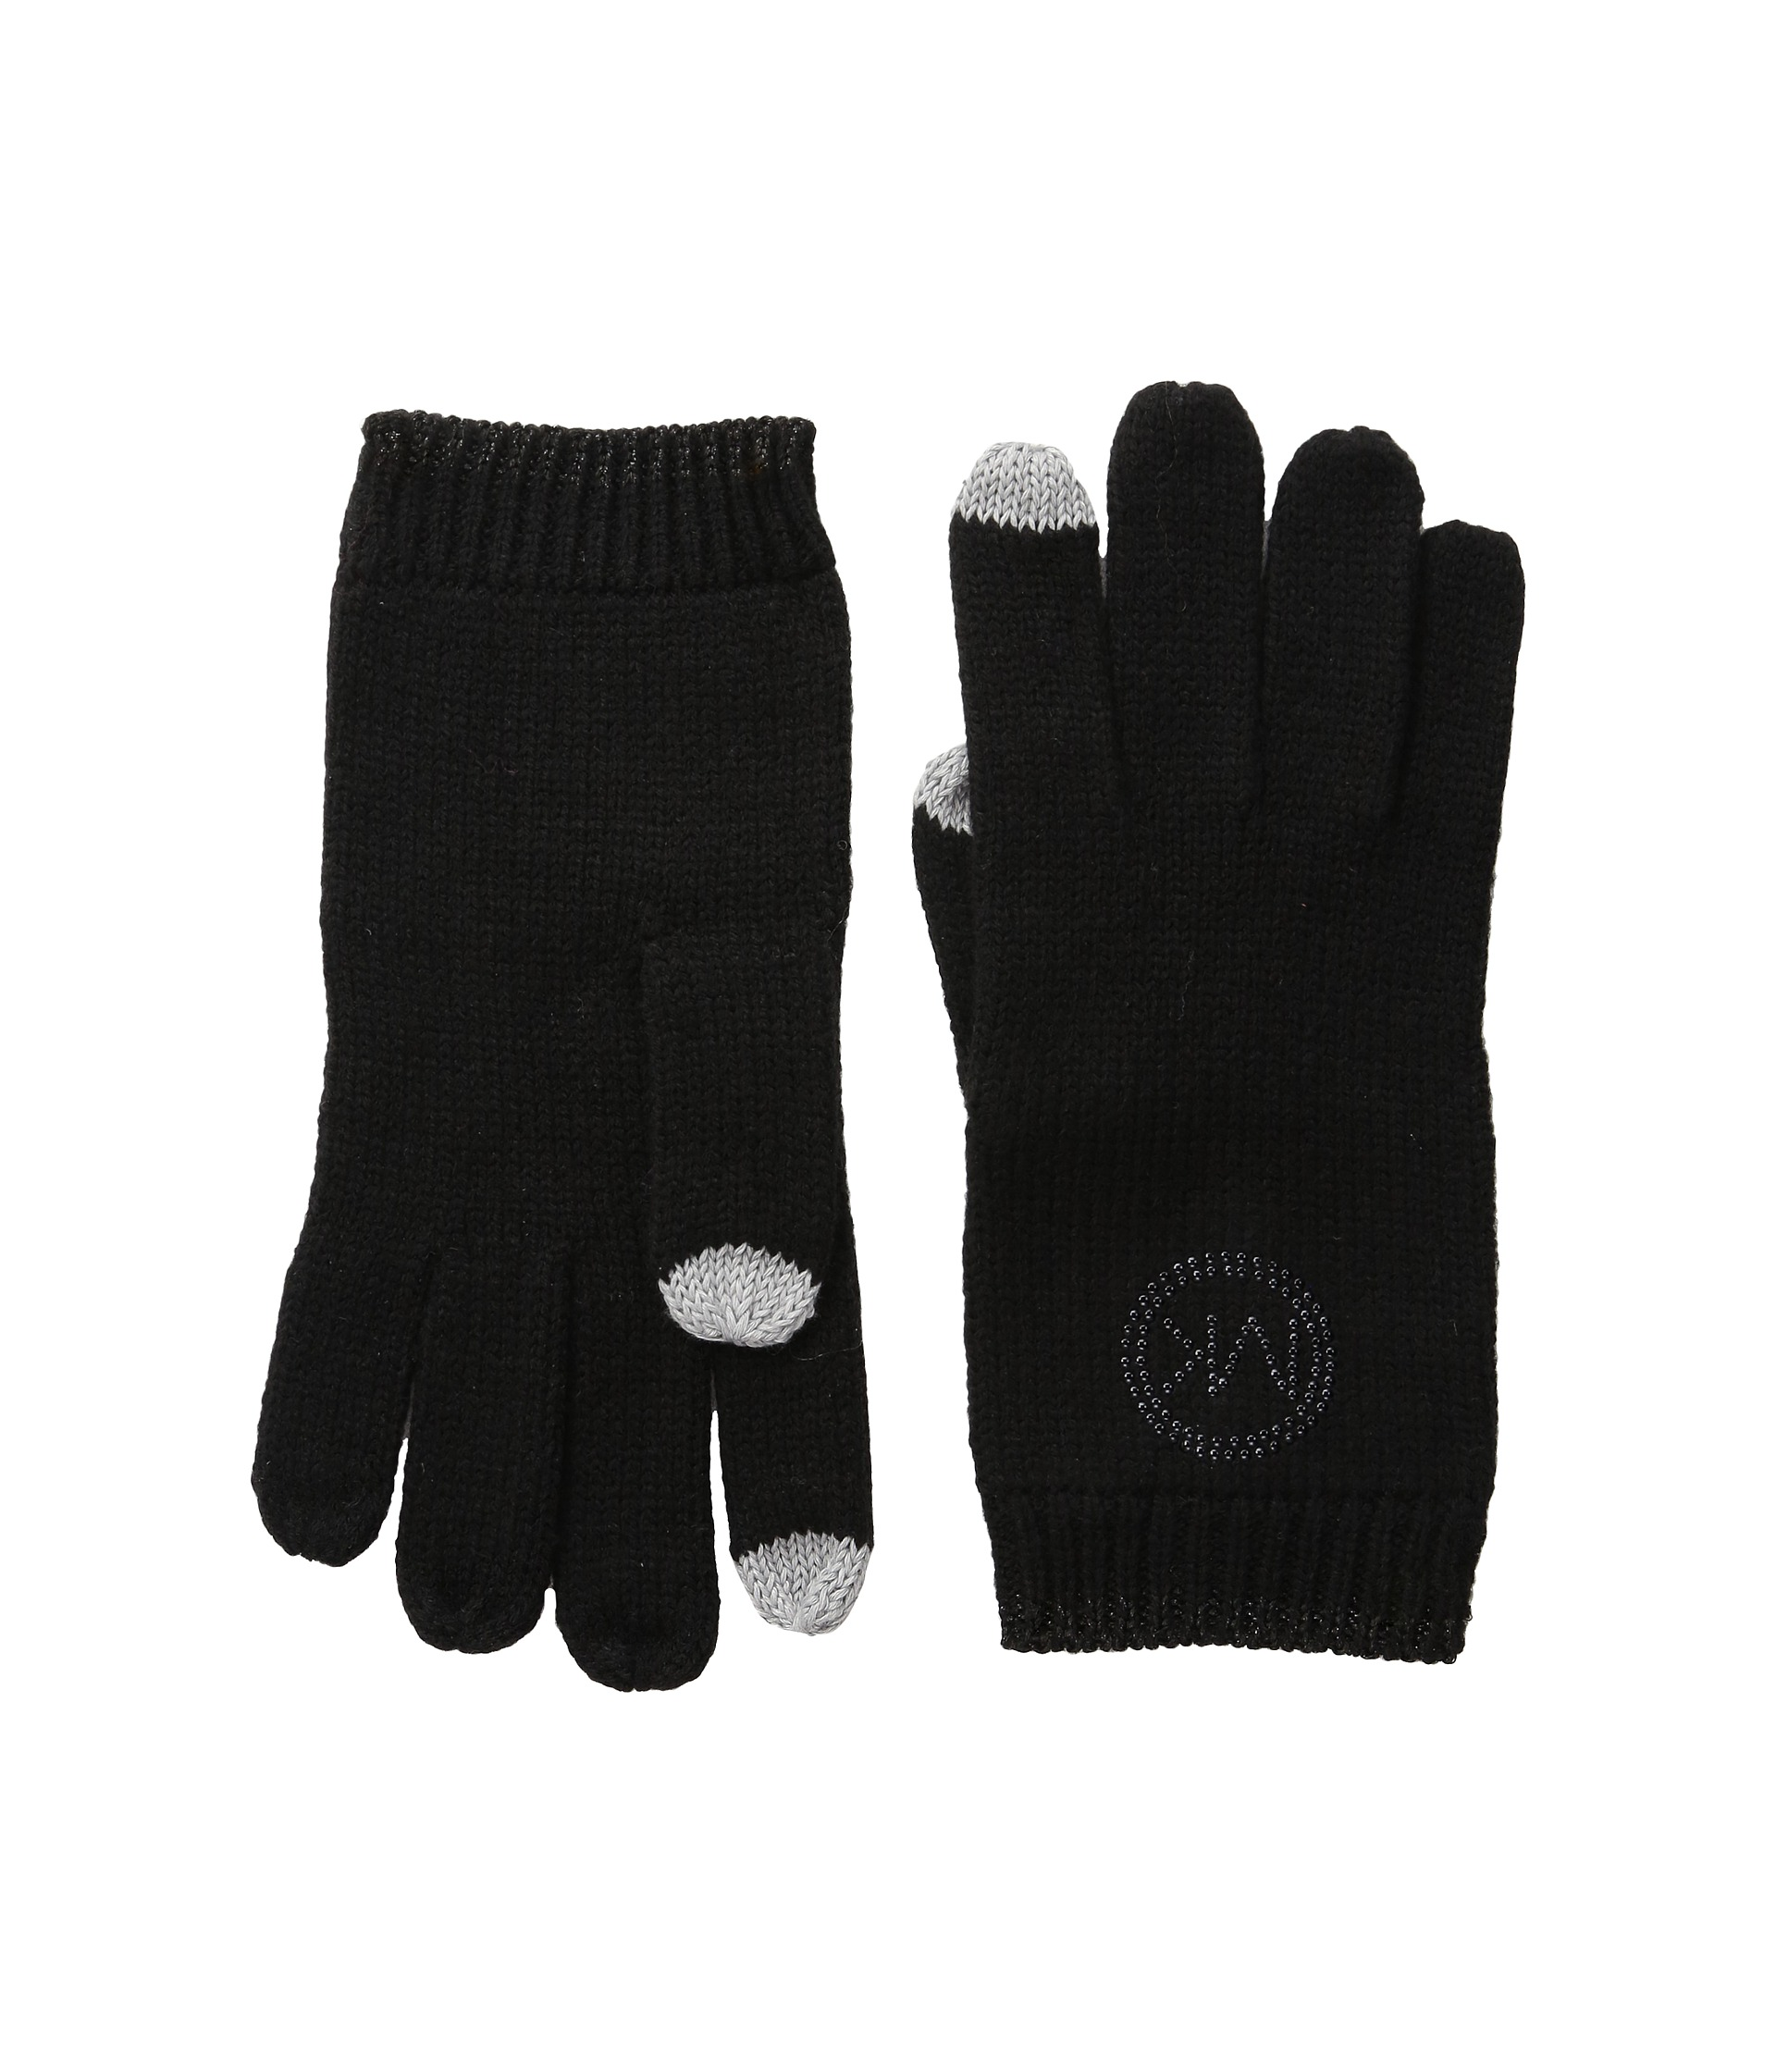 michael michael kors logo studded gloves with touch. Black Bedroom Furniture Sets. Home Design Ideas